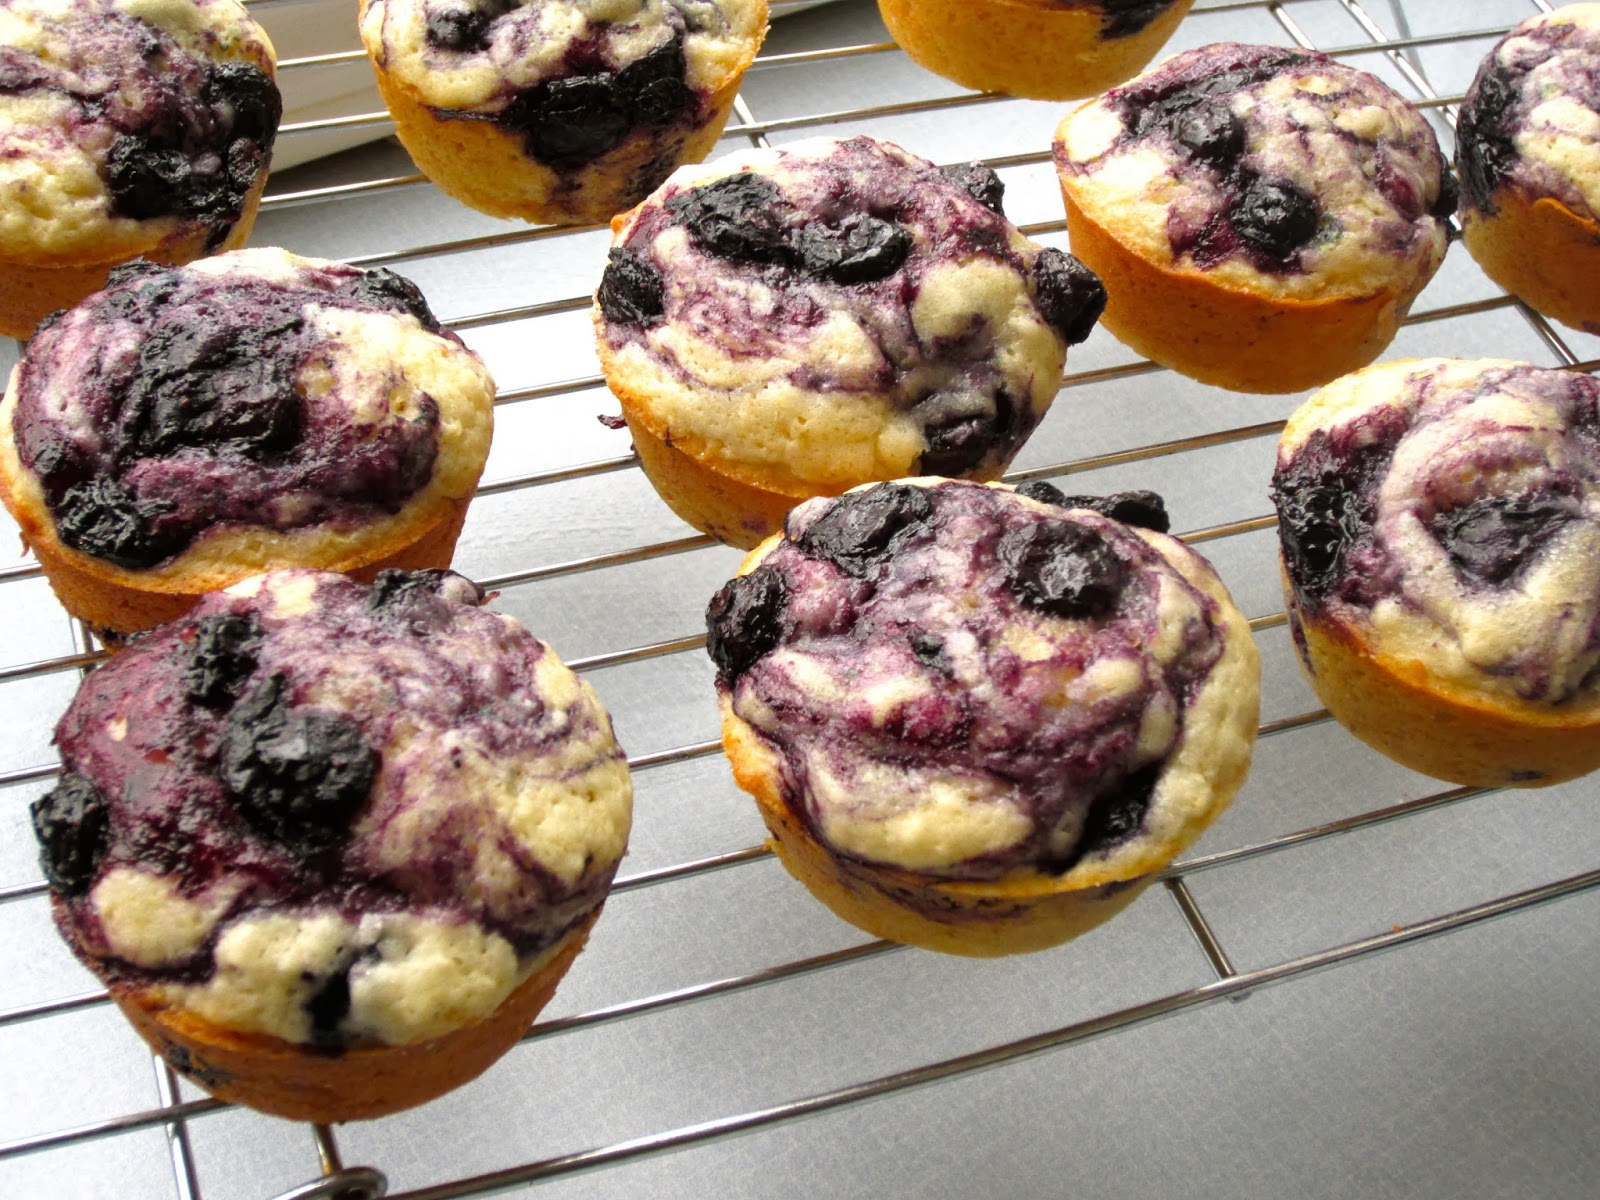 Delicious Blueberry Muffins with Blueberry Swirl